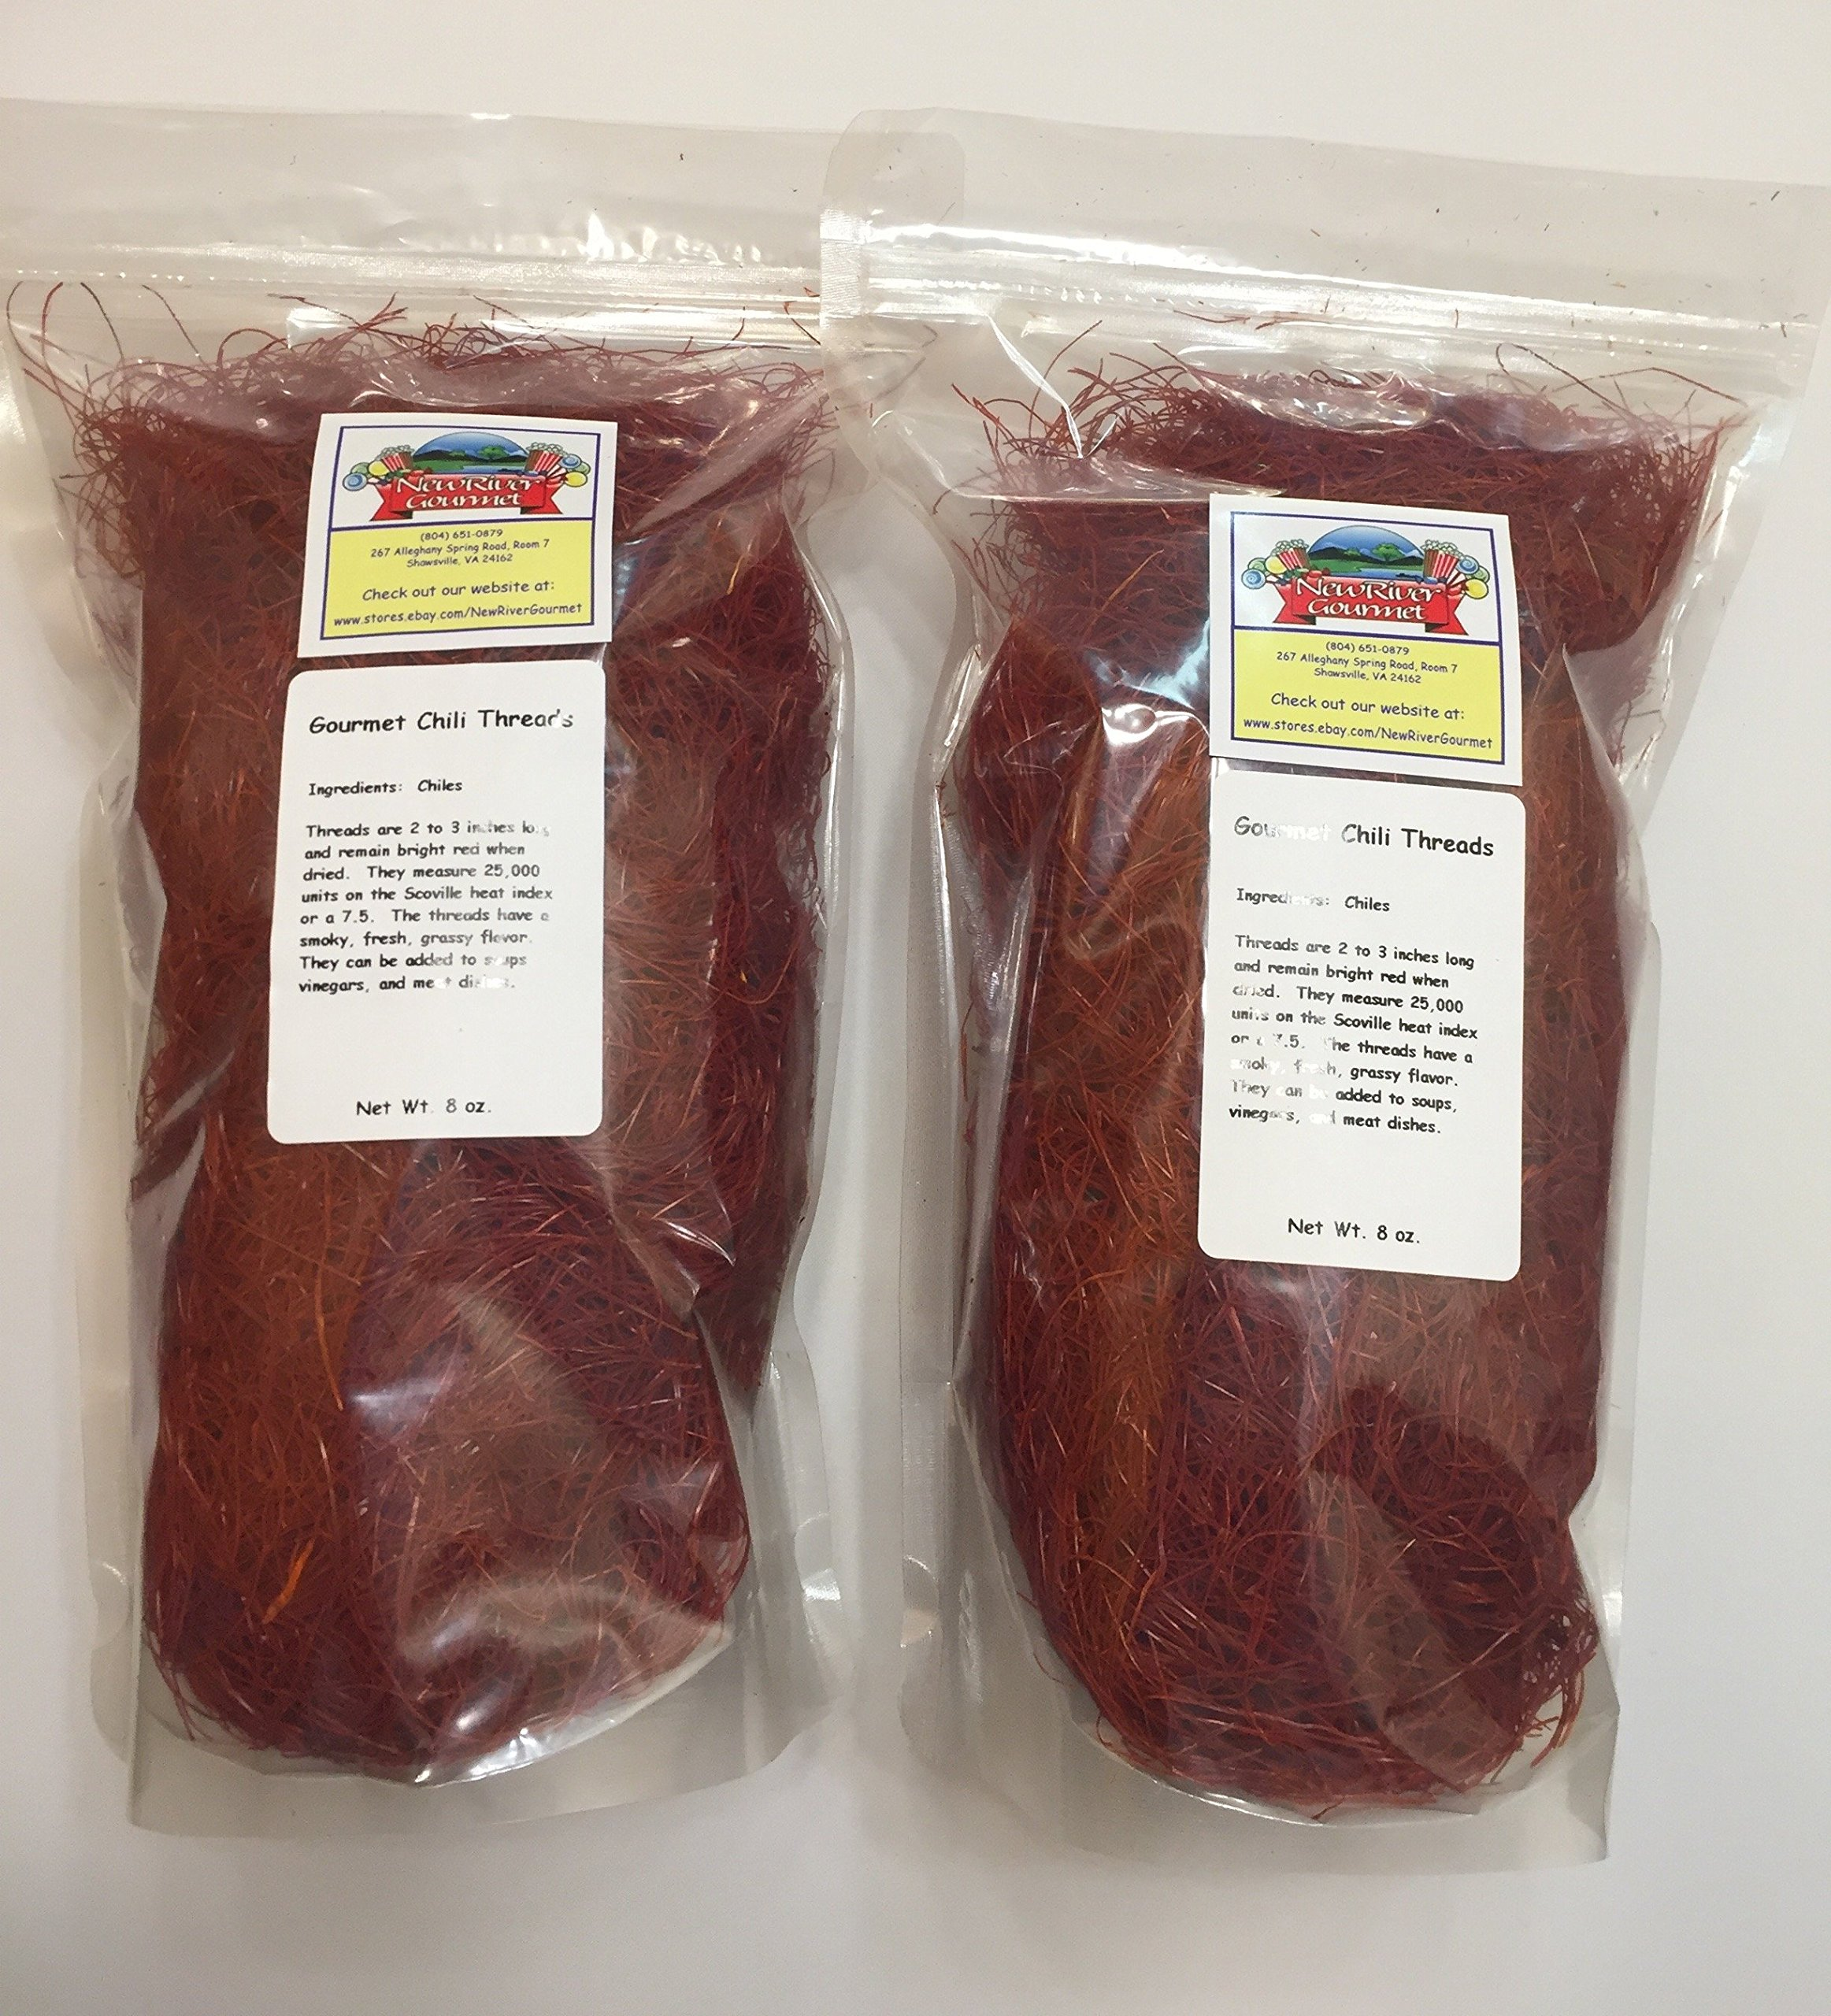 Mild Chile Threads (16 ounces (1 pound)) by New River Gourmet (Image #1)